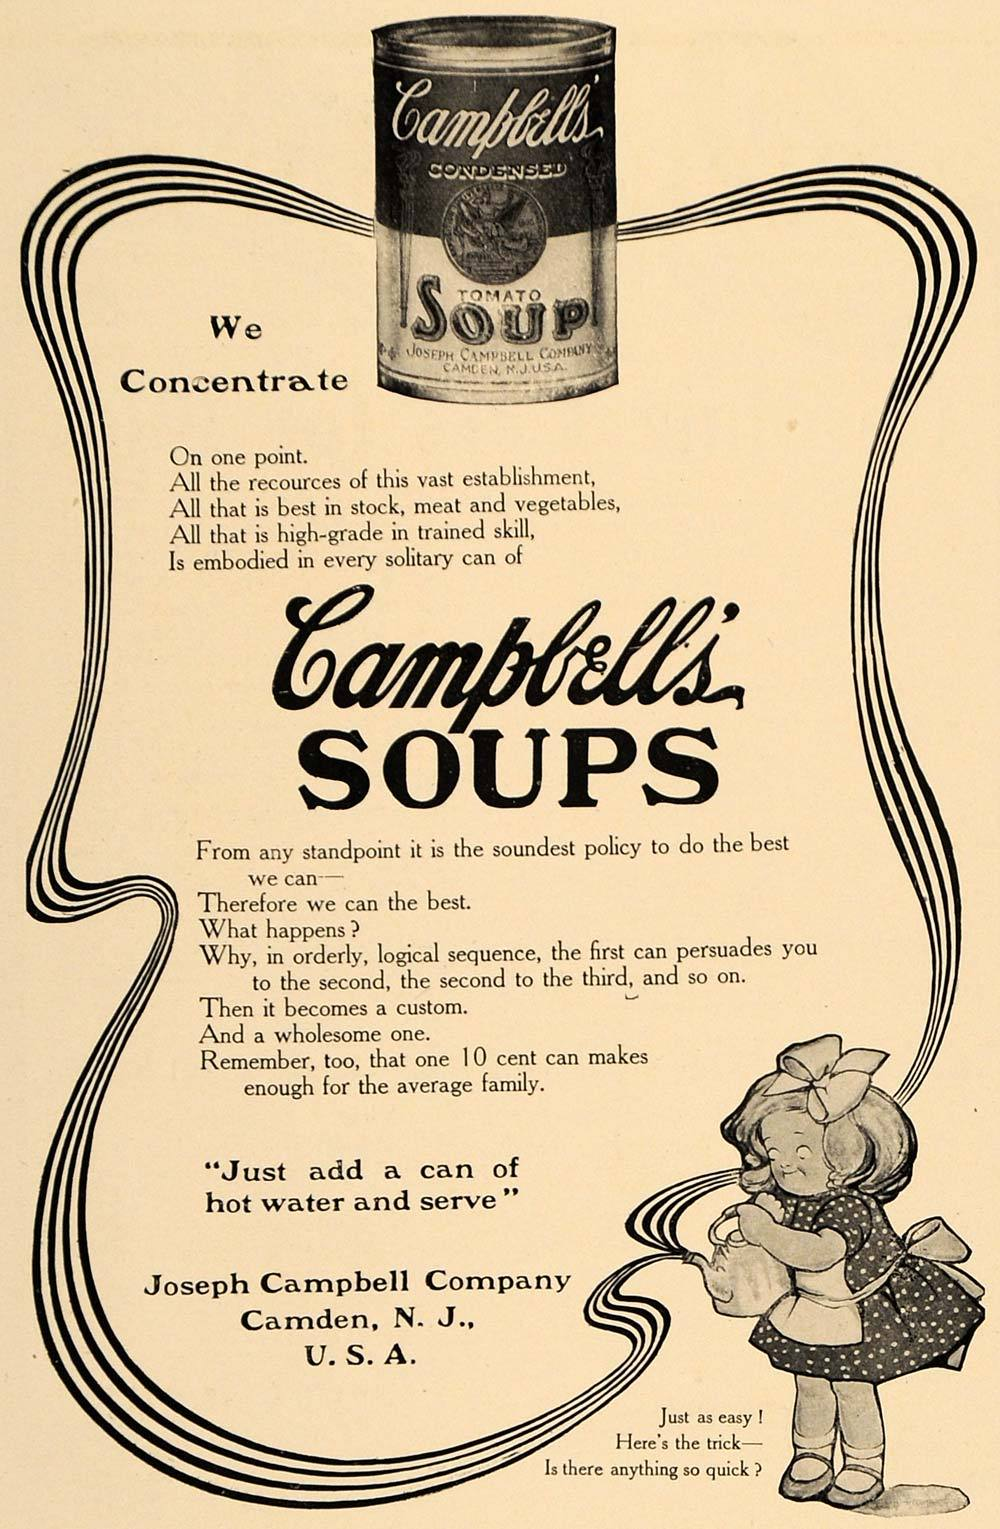 CampbellsSoup 02